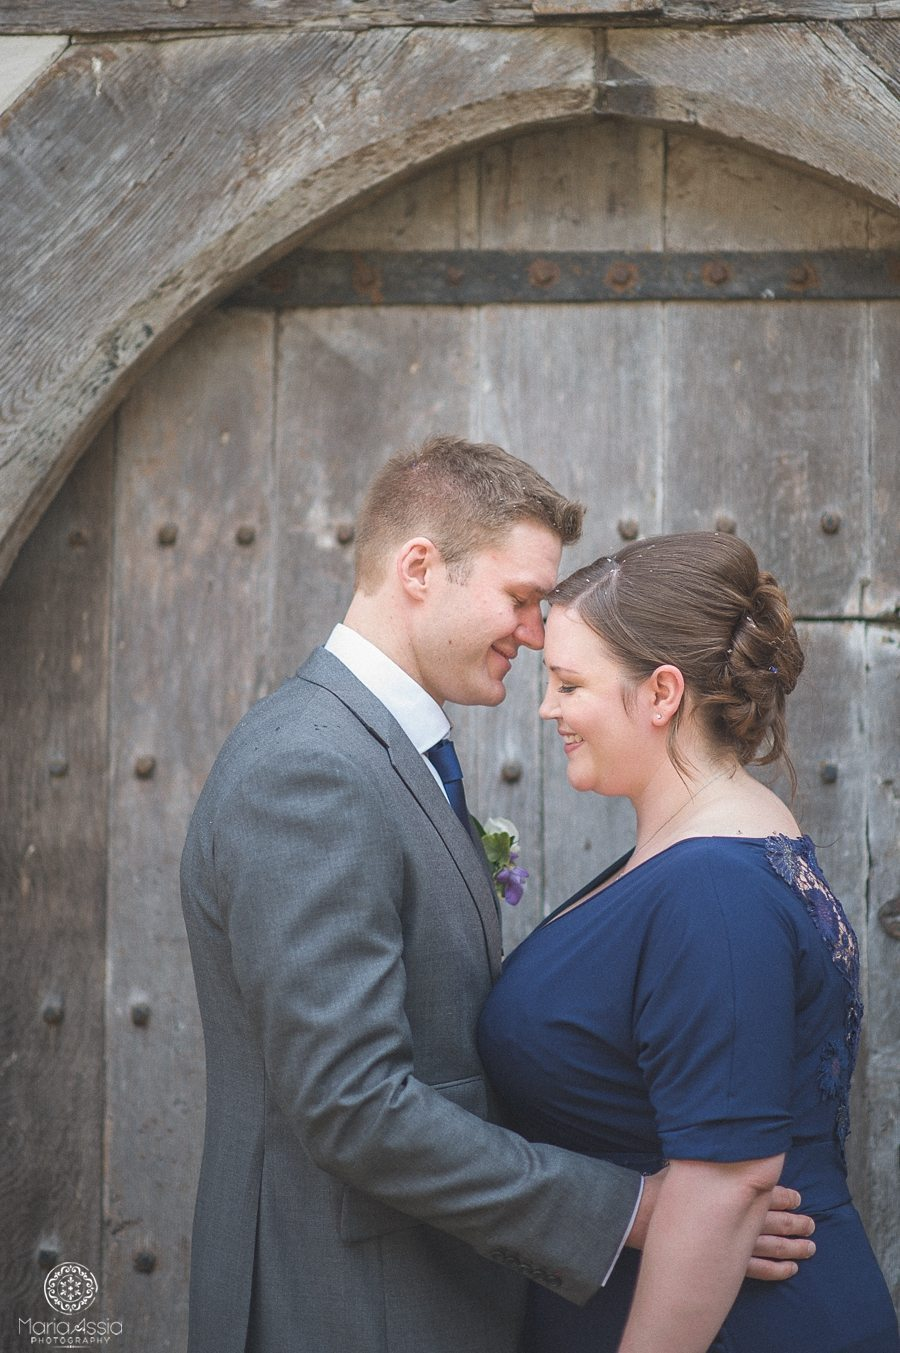 Wedding portrait of the bride and groom at their Birtsmorton Court navy blue wedding